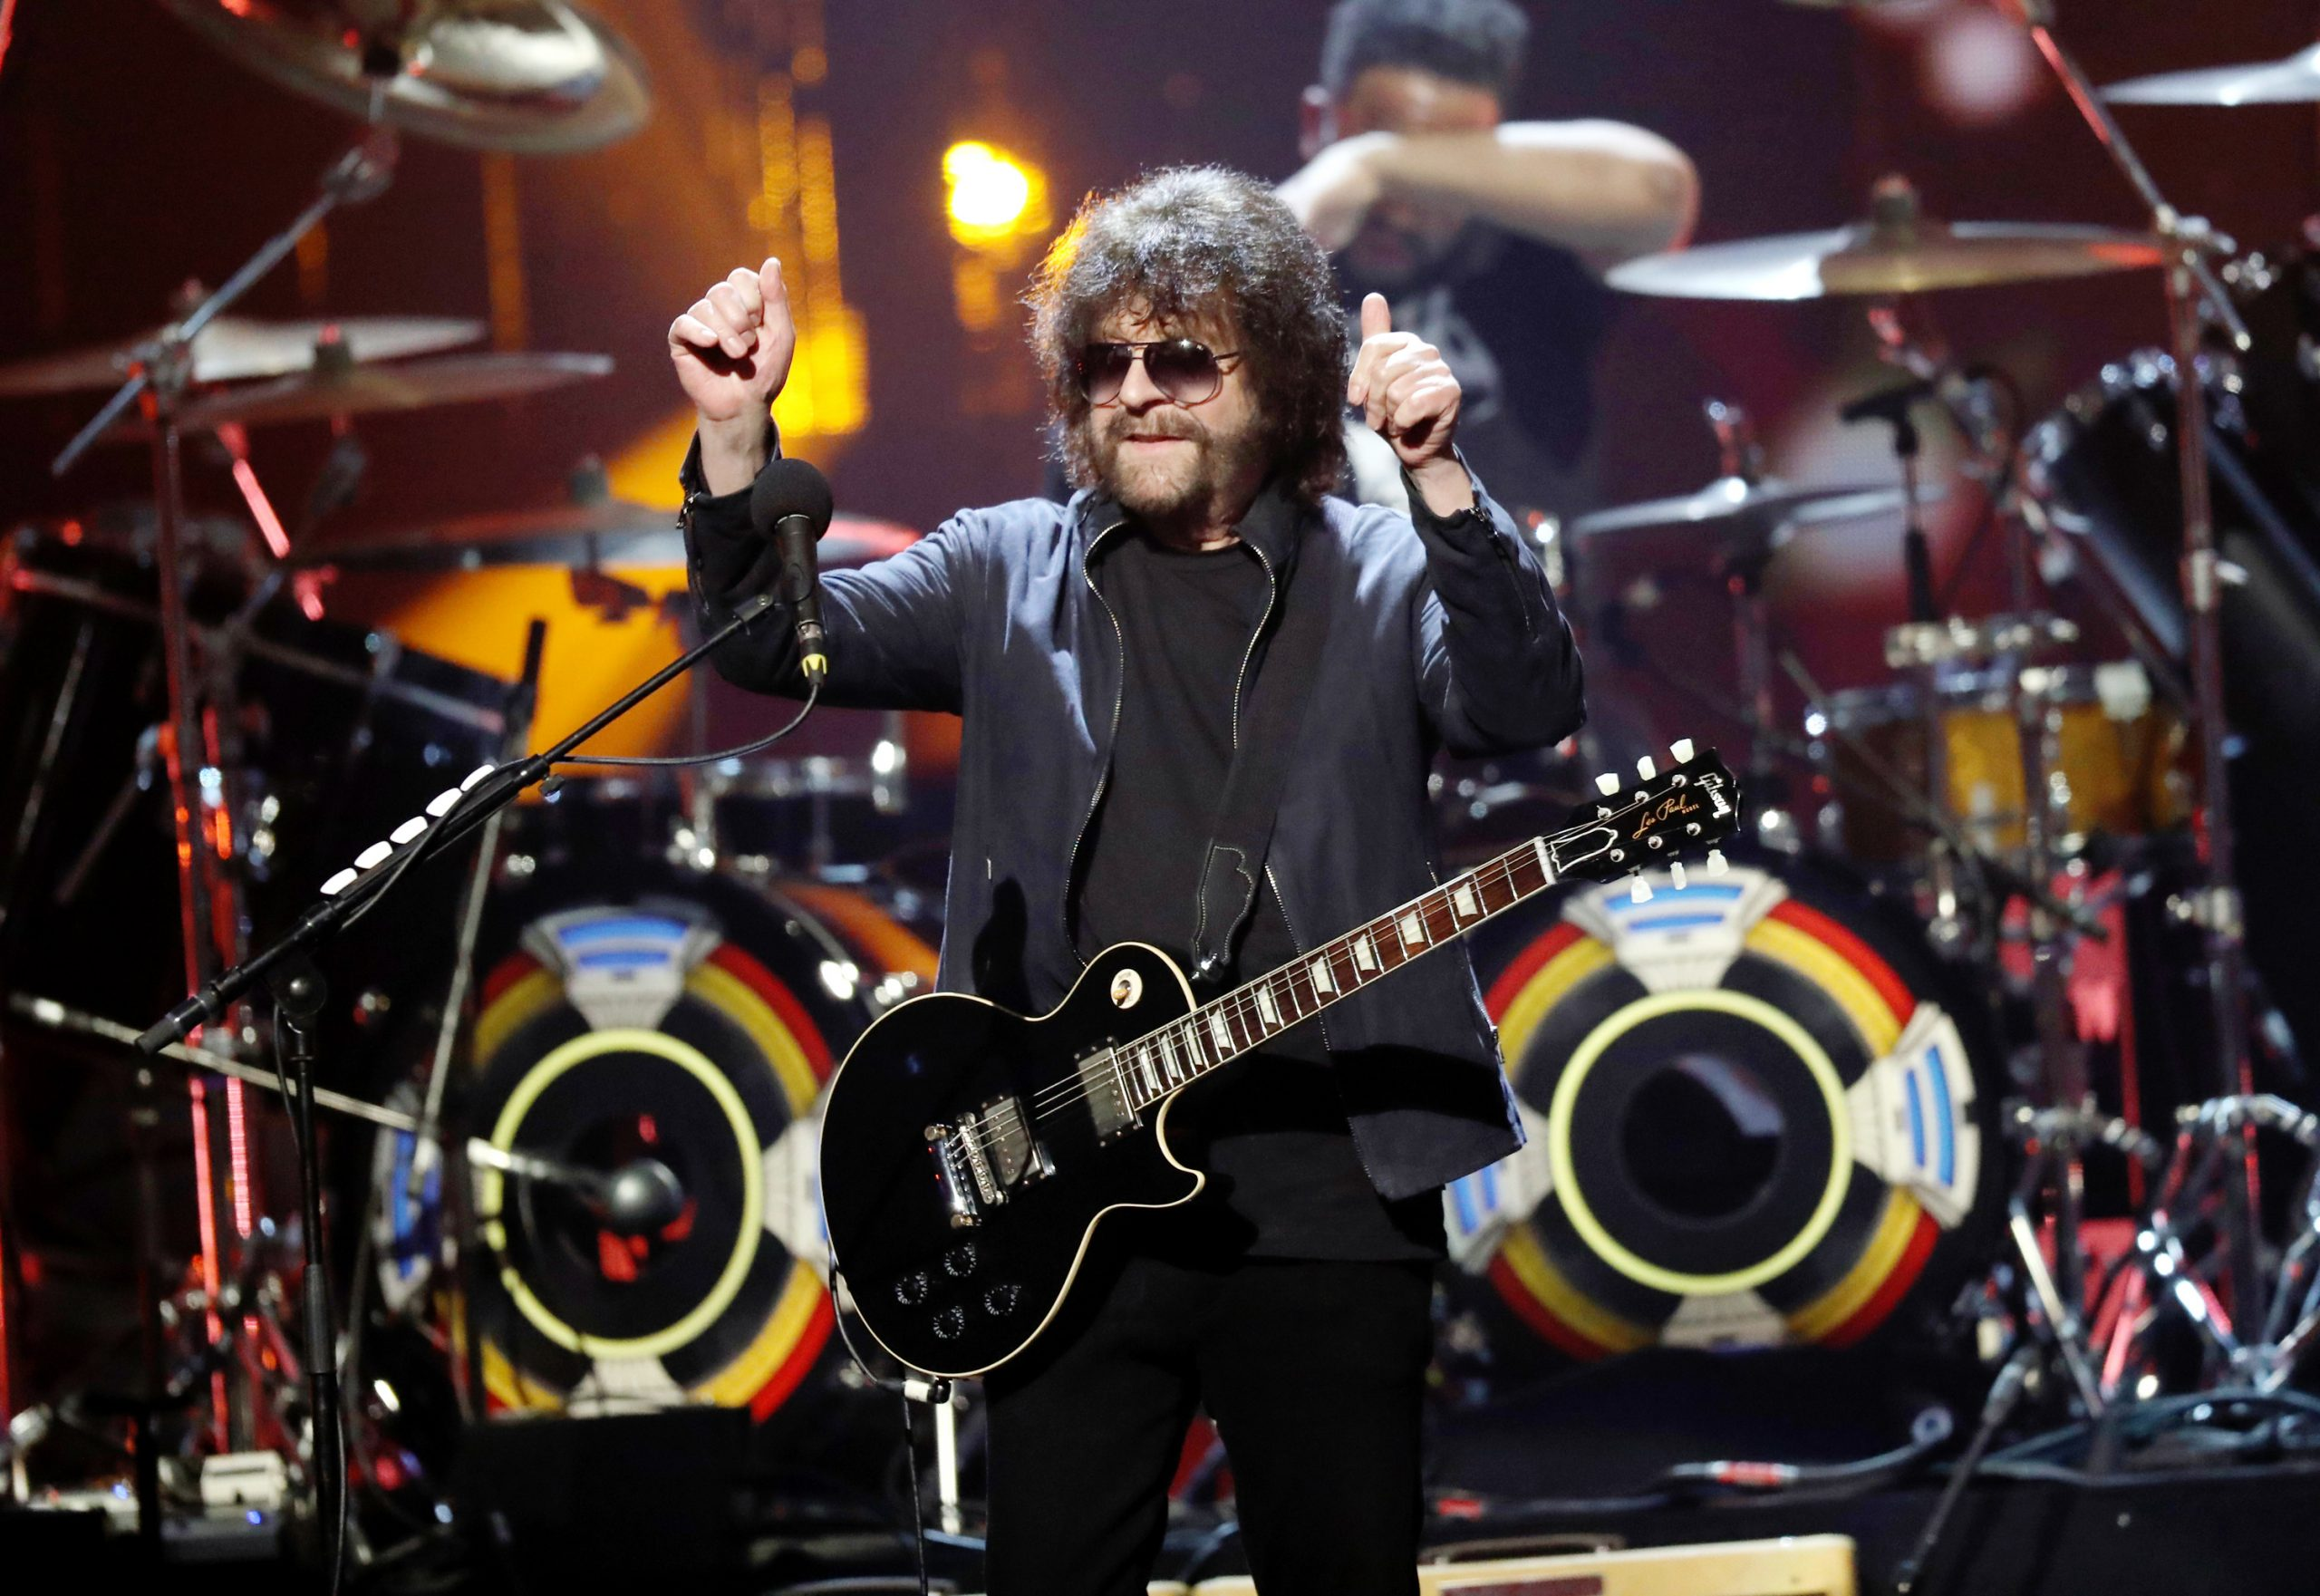 What Does My Shield of Armor Have To Do With Jeff Lynne?